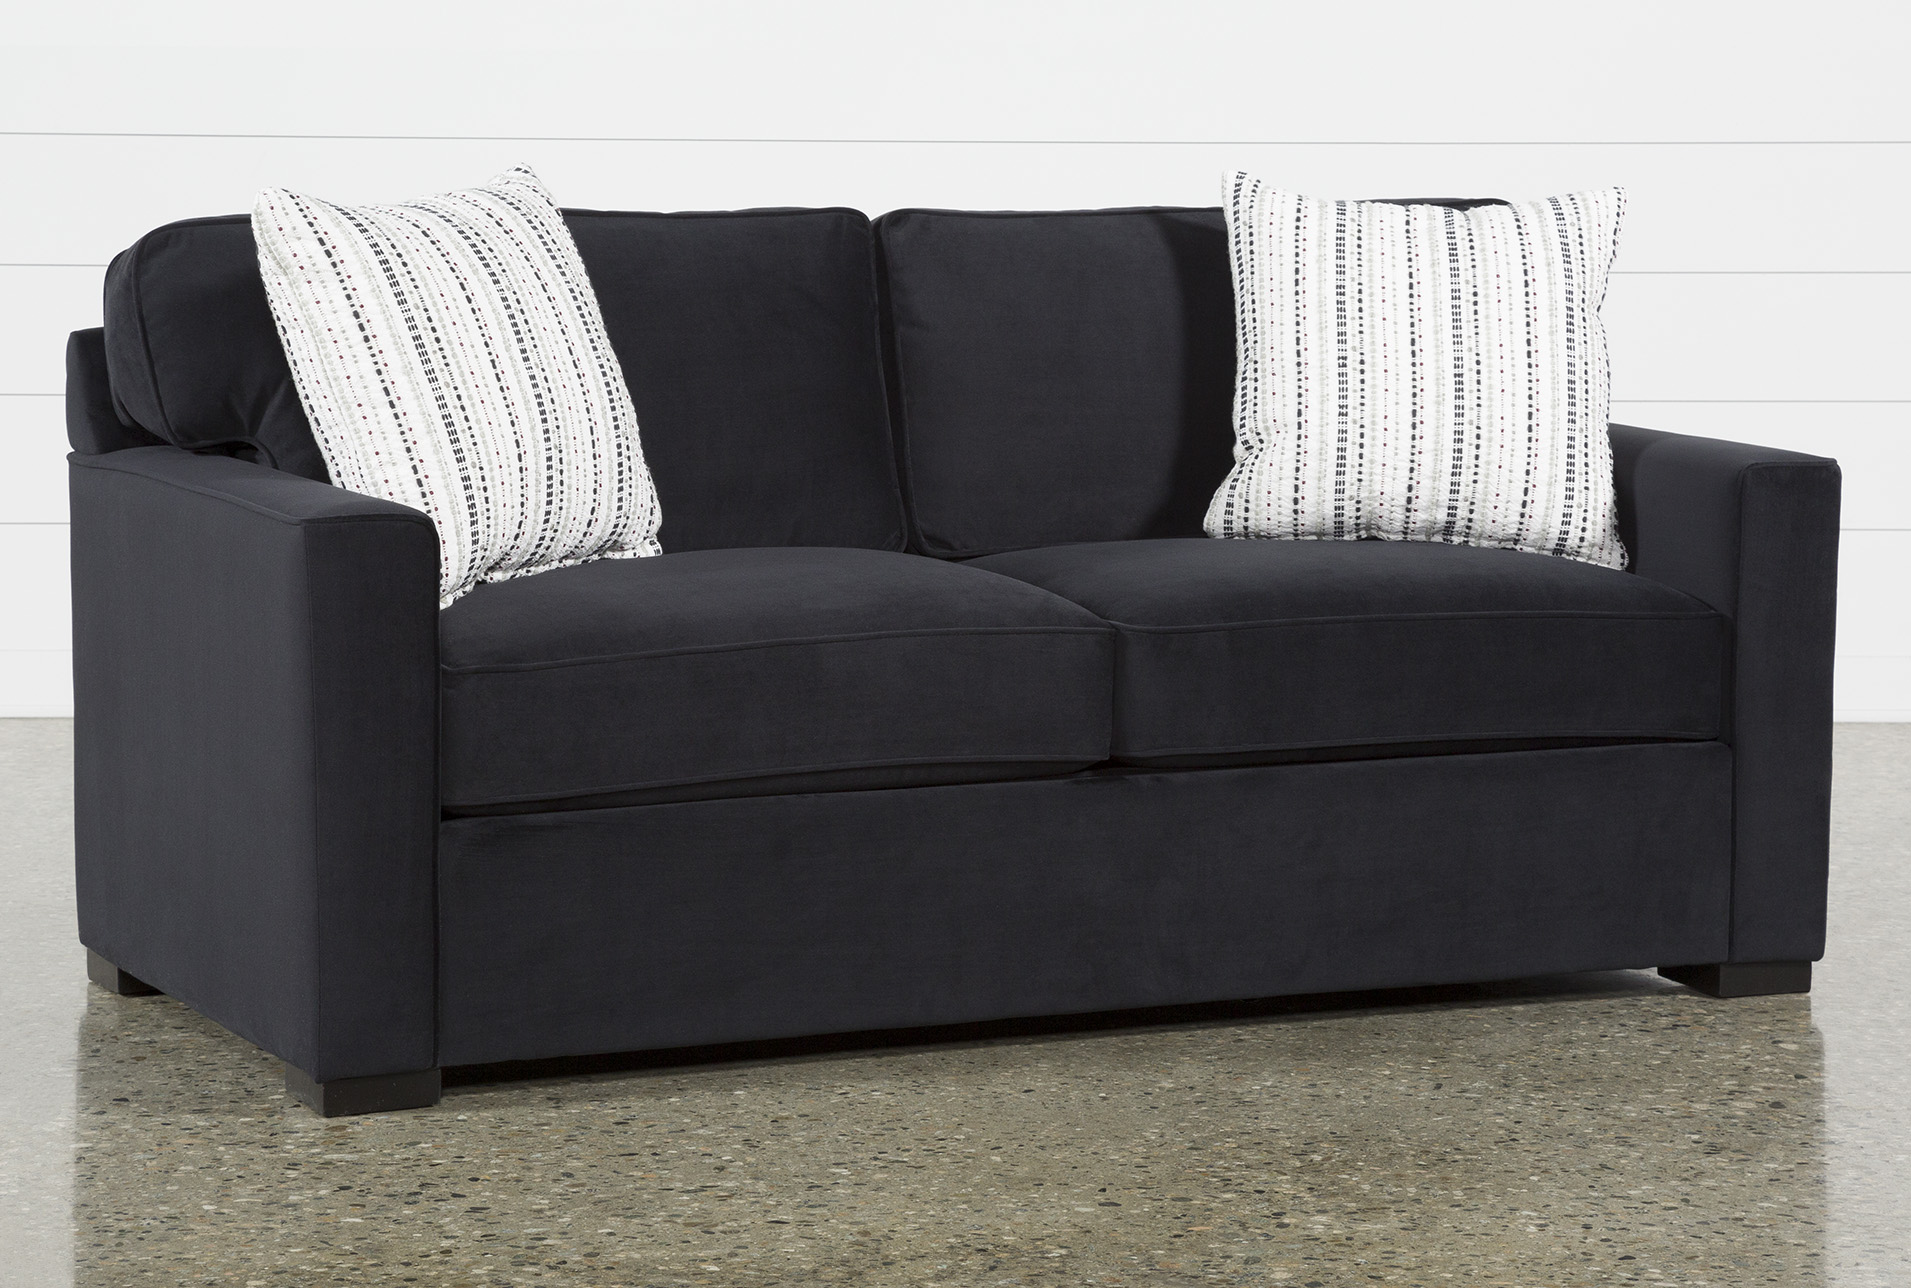 Small Space Sofas & Couches - Free Assembly with Delivery | Living